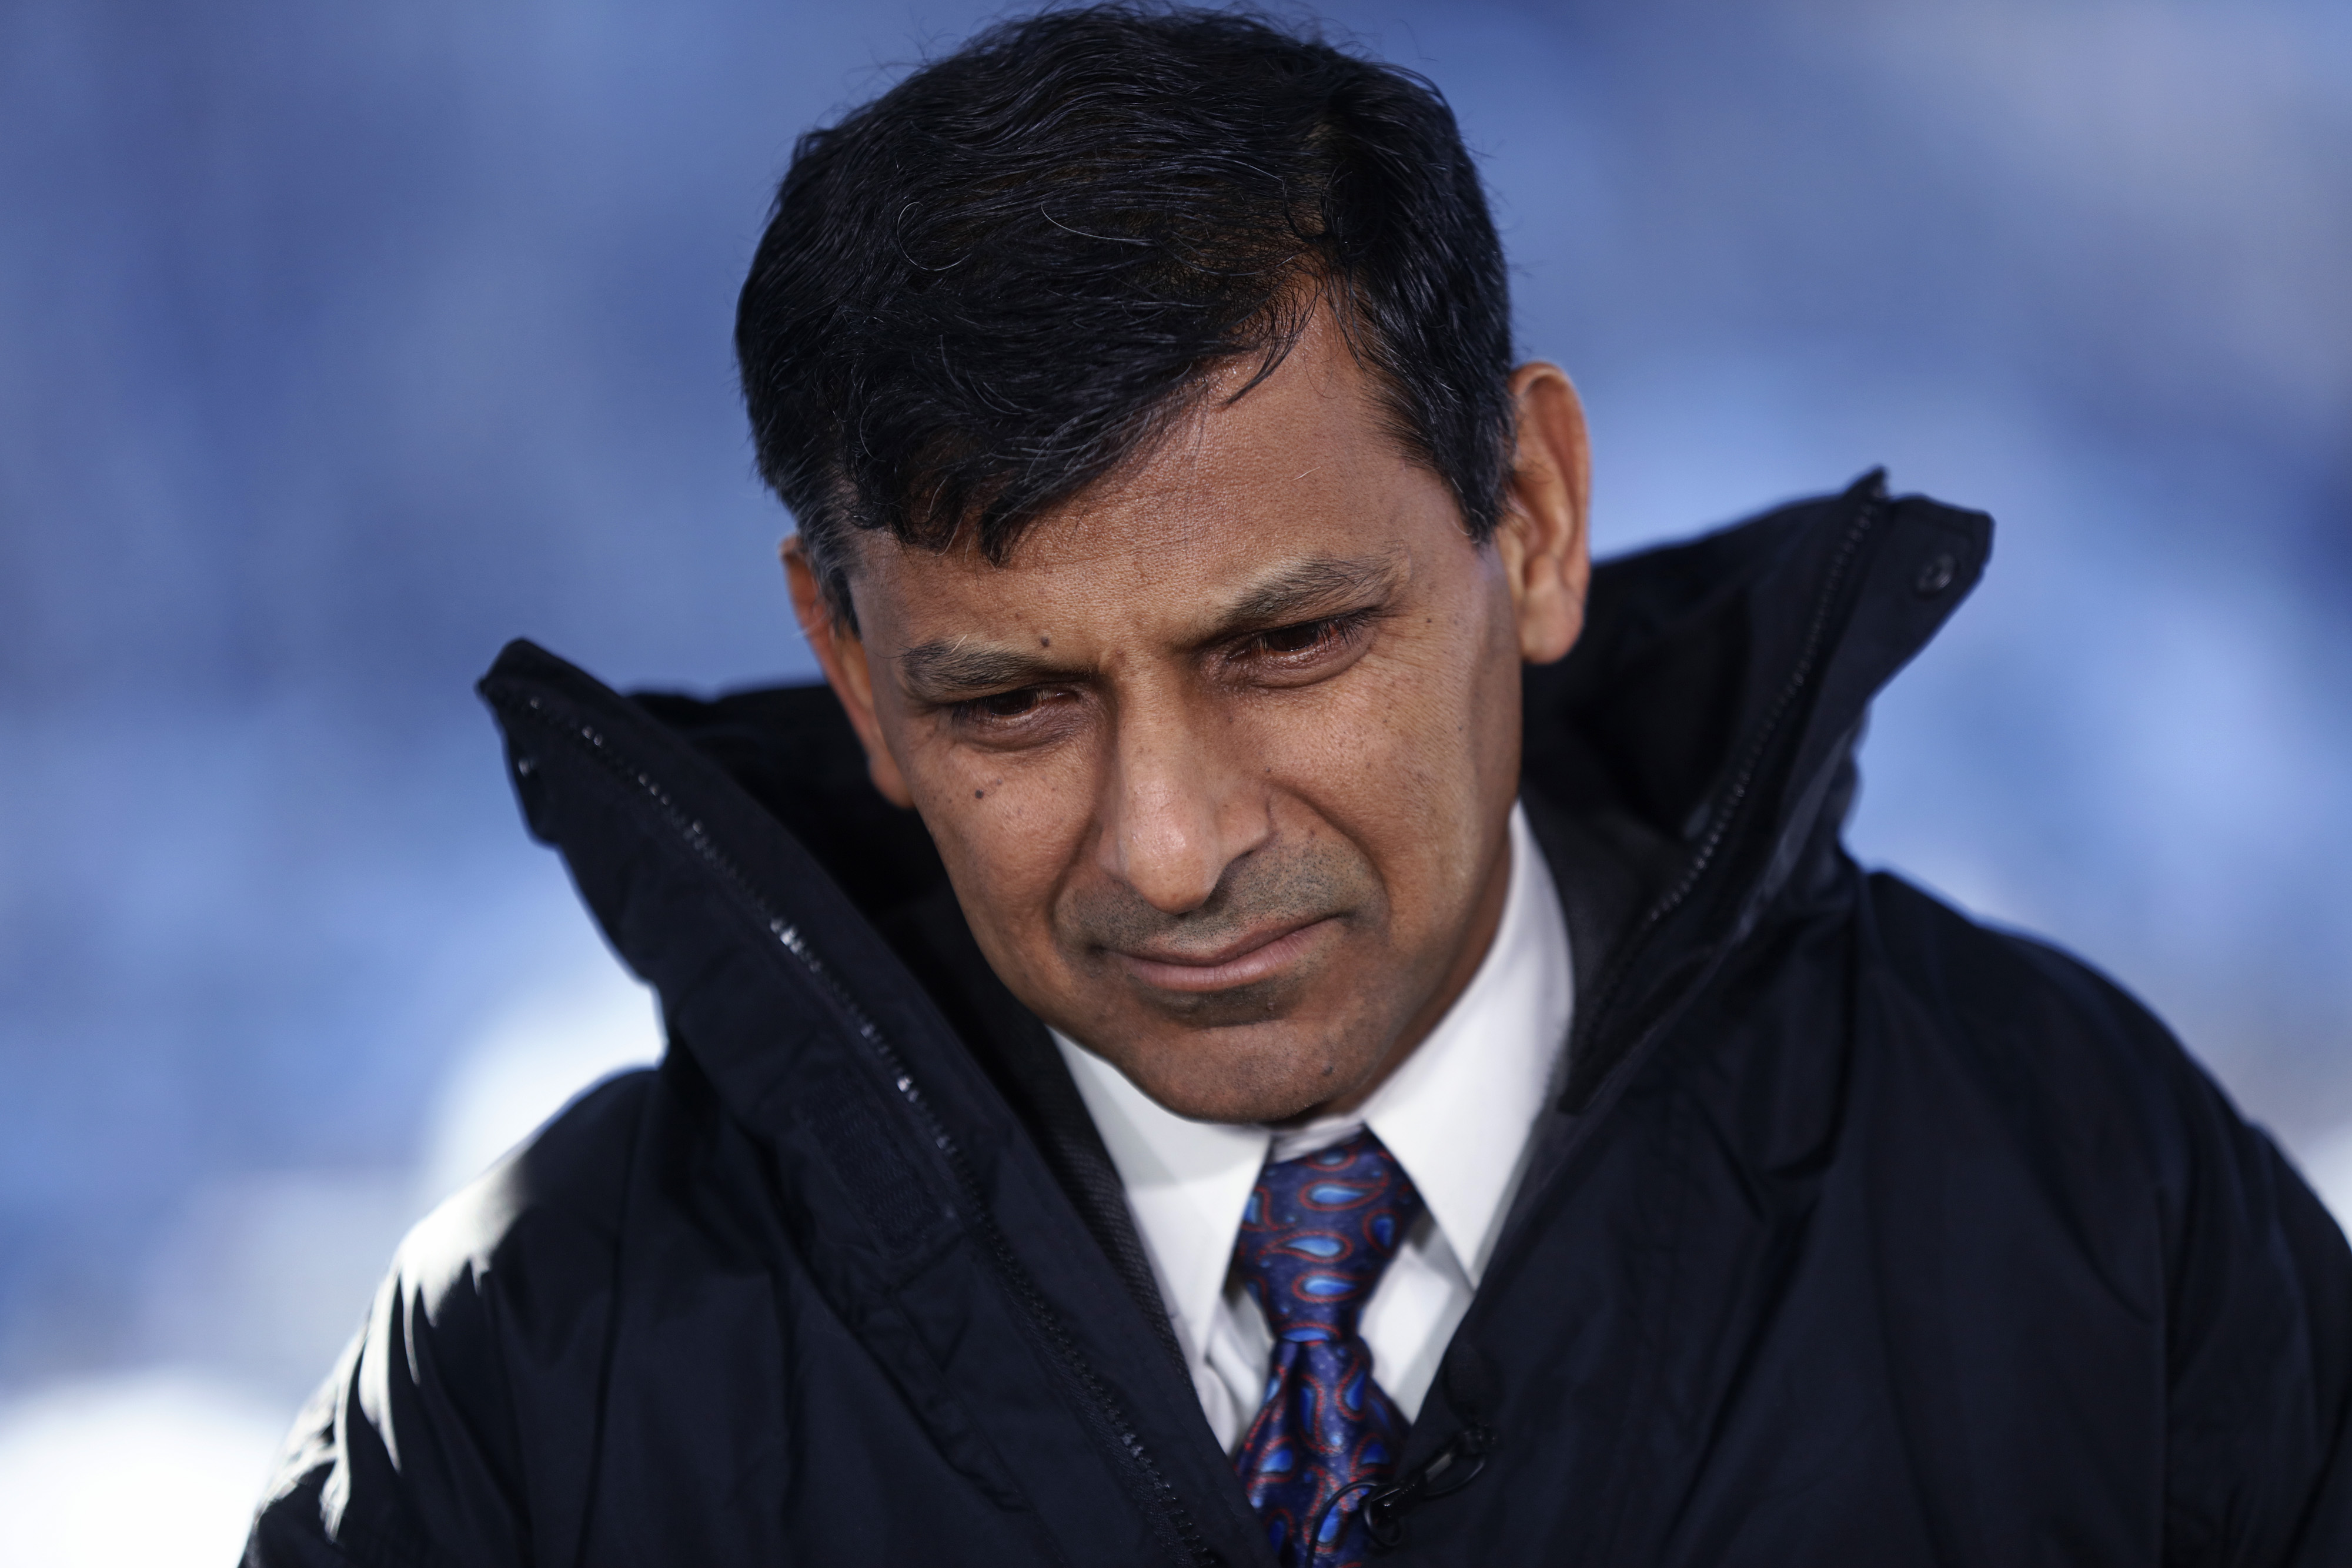 Raghuram Rajan, governor of the Reserve Bank of India (RBI), looks on during a Bloomberg Television interview at the World Economic Forum (WEF) in Davos, Switzerland, on Thursday, Jan. 21, 2016.